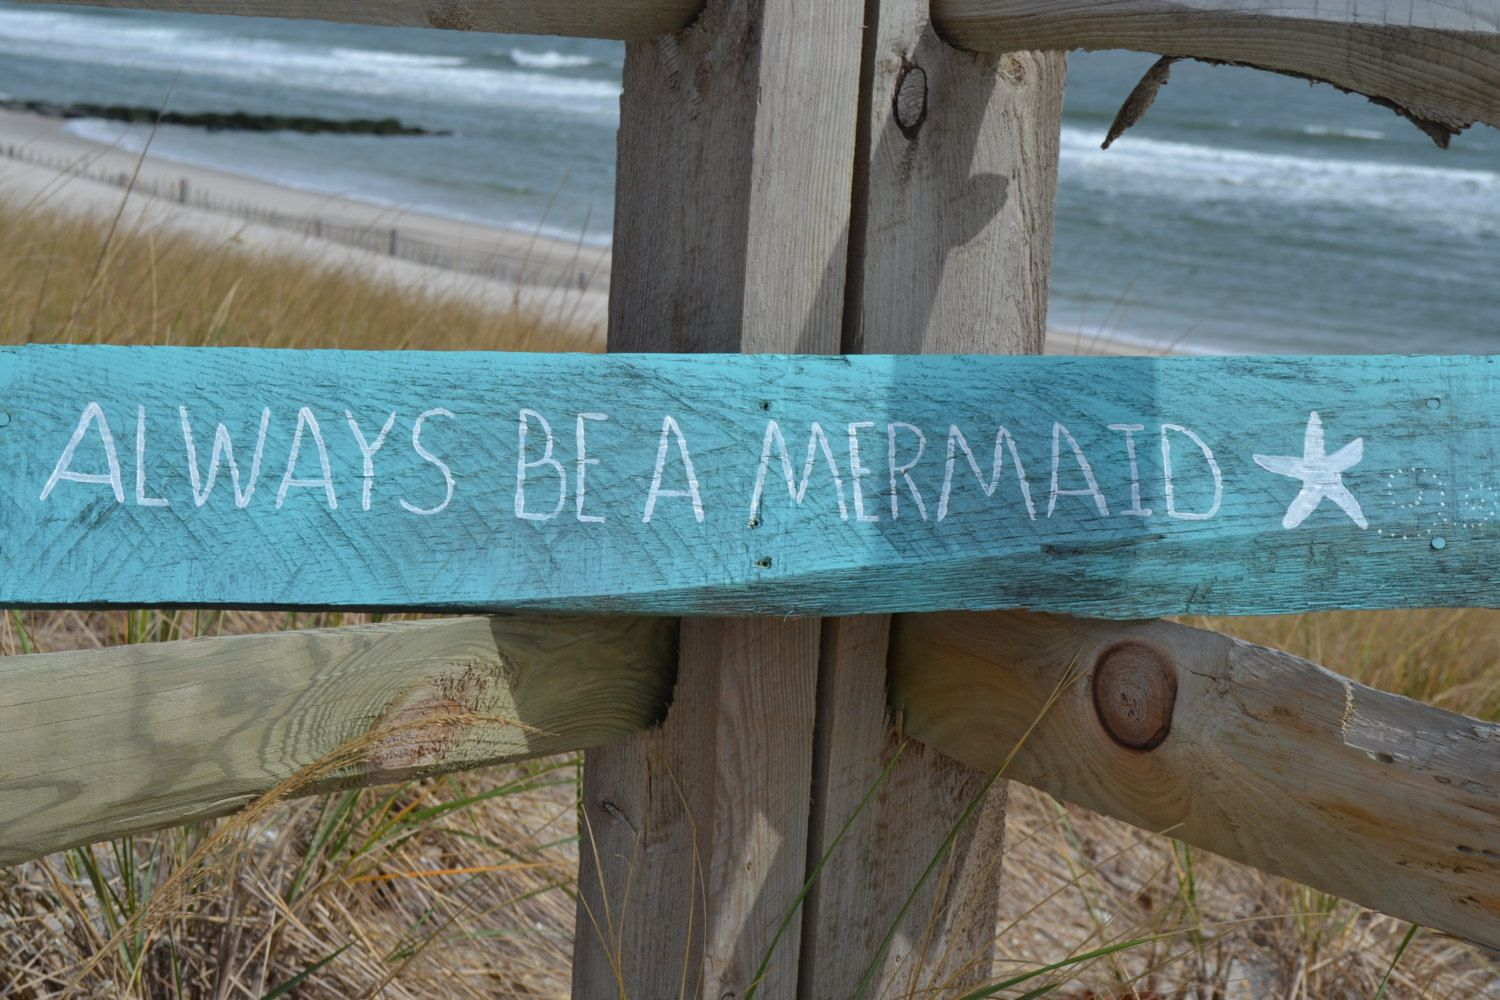 Always Be a Mermaid.  Reclaimed Wood, Wall Art, HandMade, Great Piece with tons of Character by MomsGoneMad on Etsy